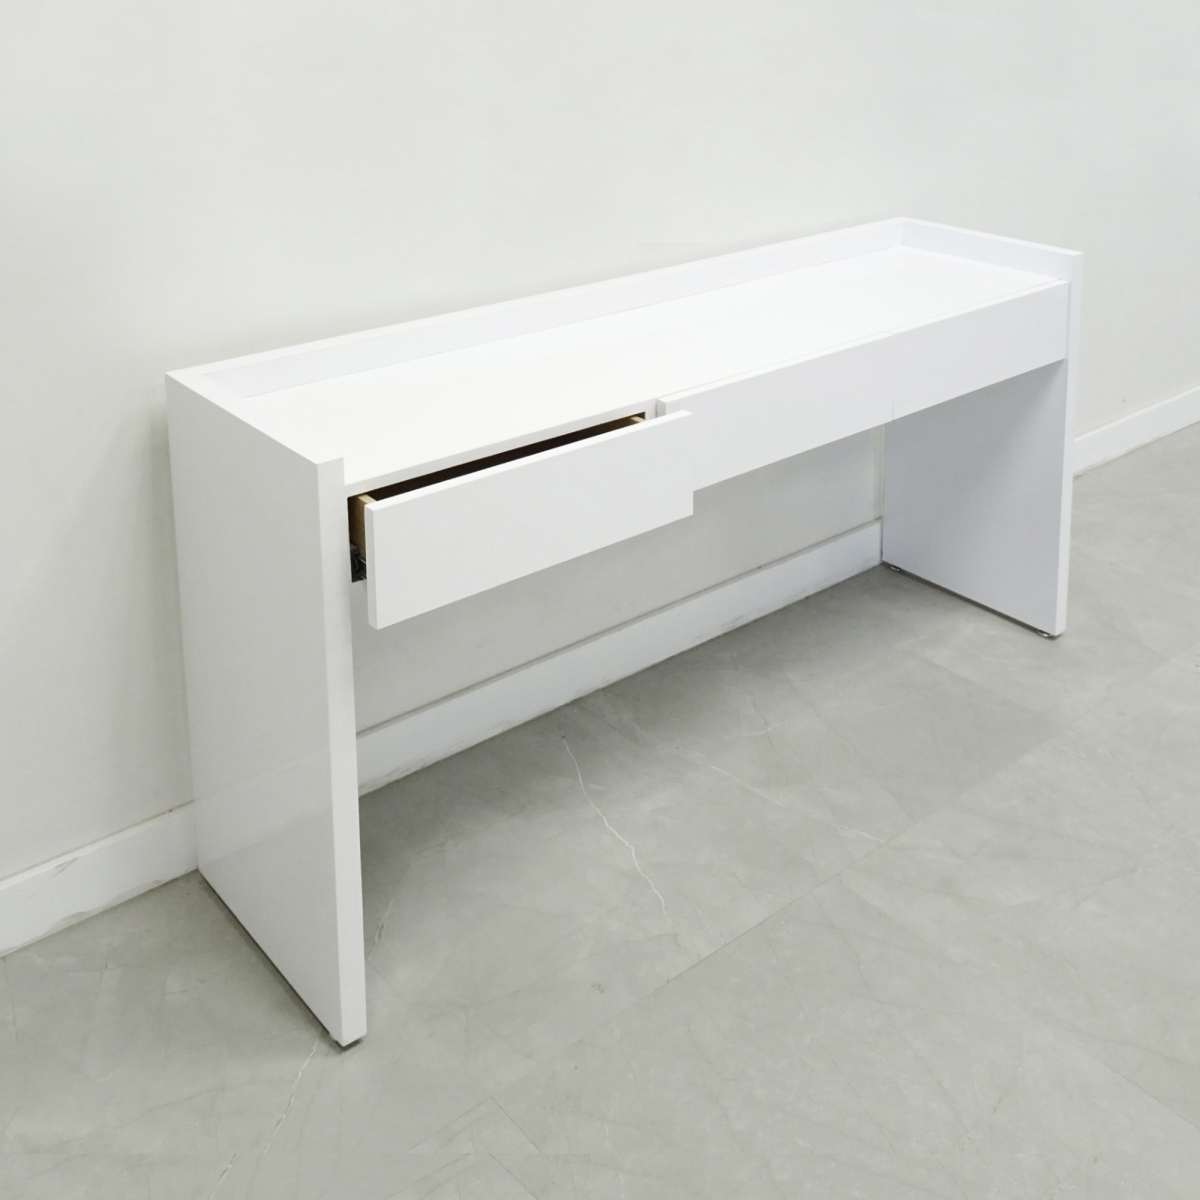 Aspen Console Table with Glass top